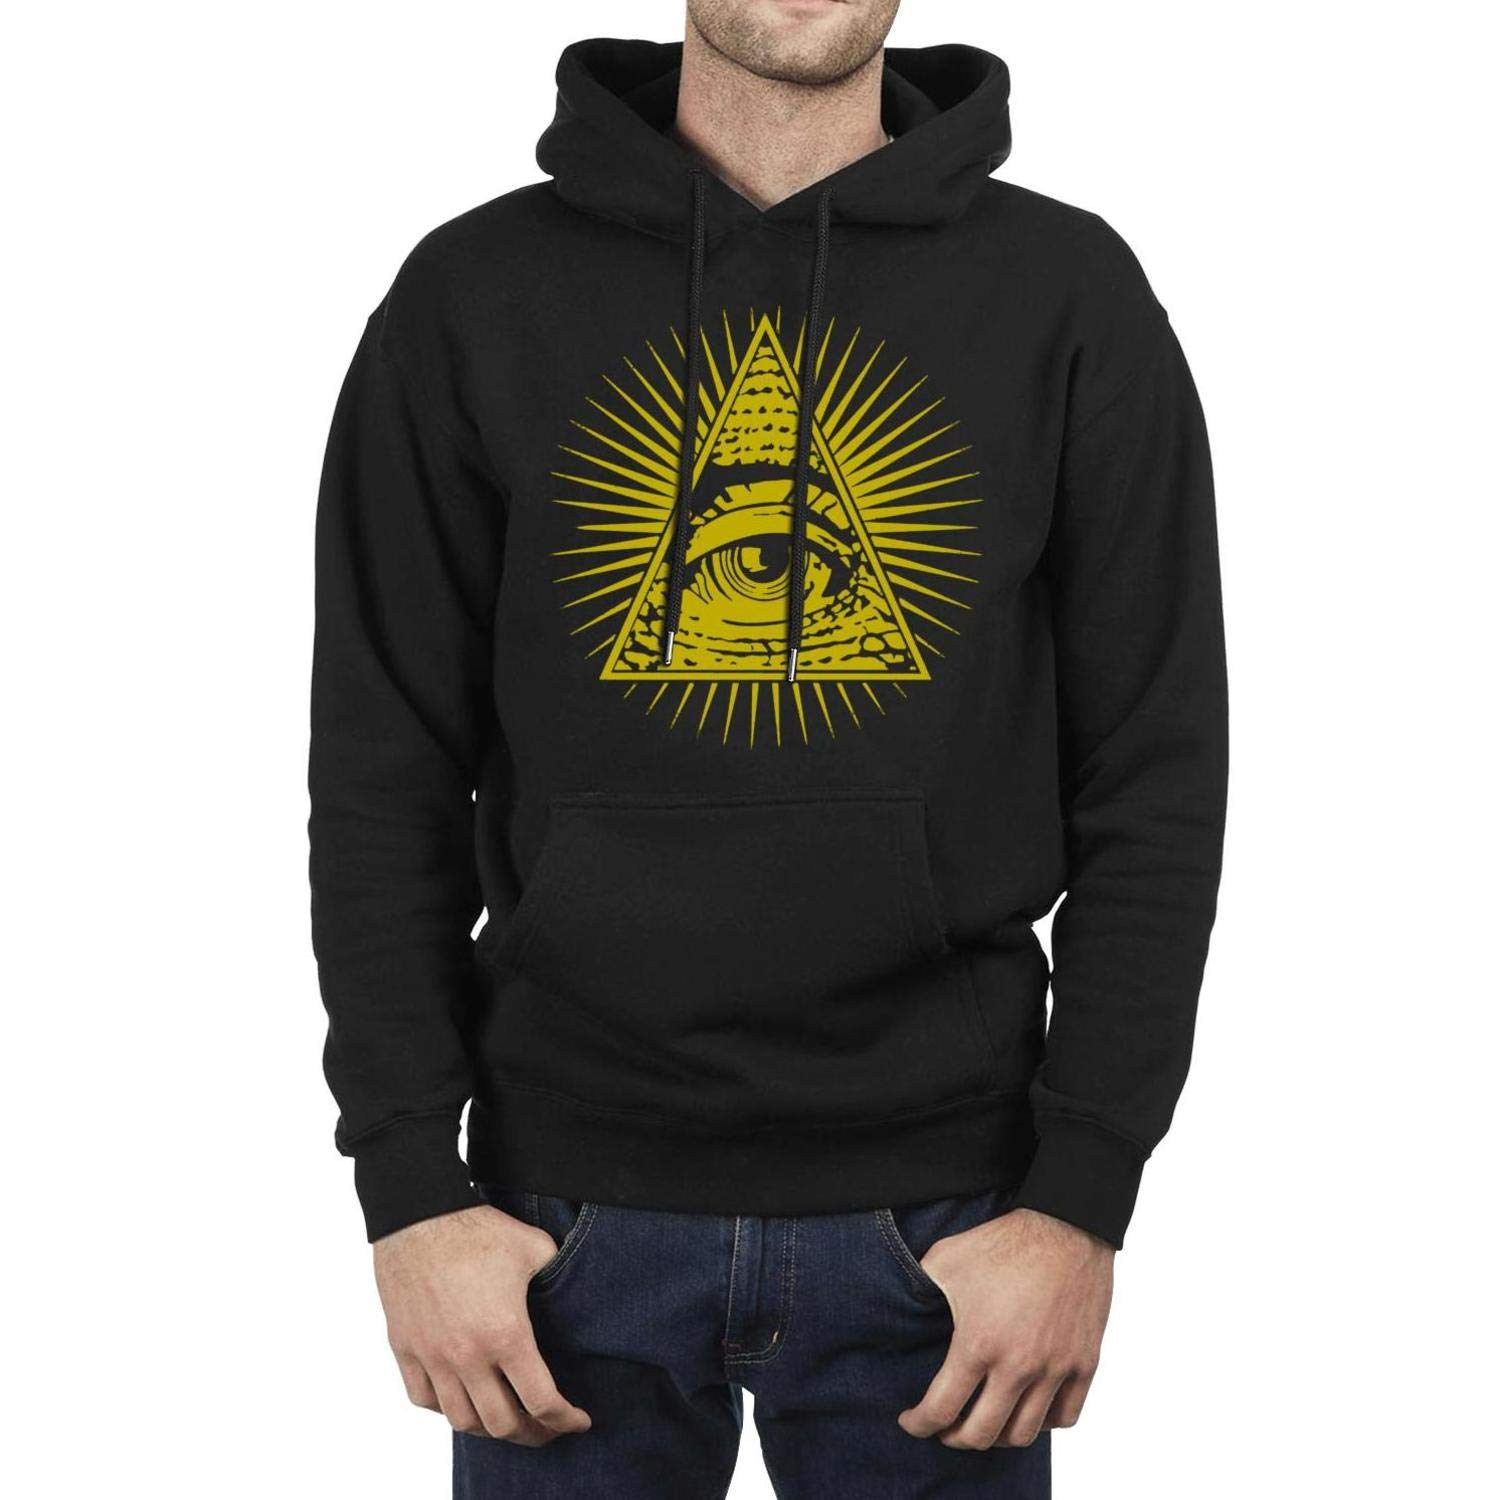 YJRTISF Pockets Winter Classic Fleece Hoodie for Mens